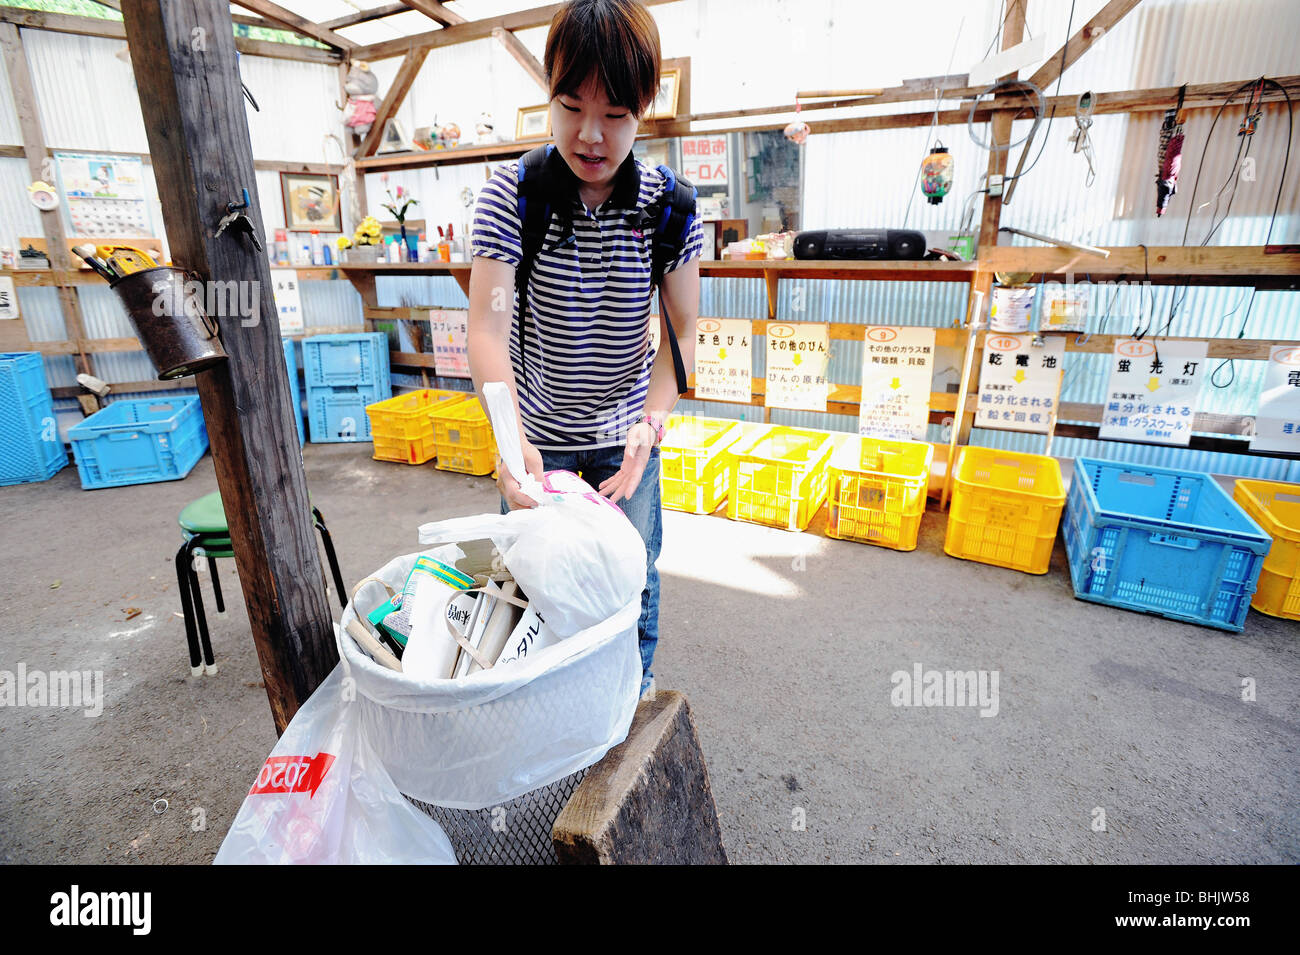 A resident disposes of waste at the waste disposal center in Stock